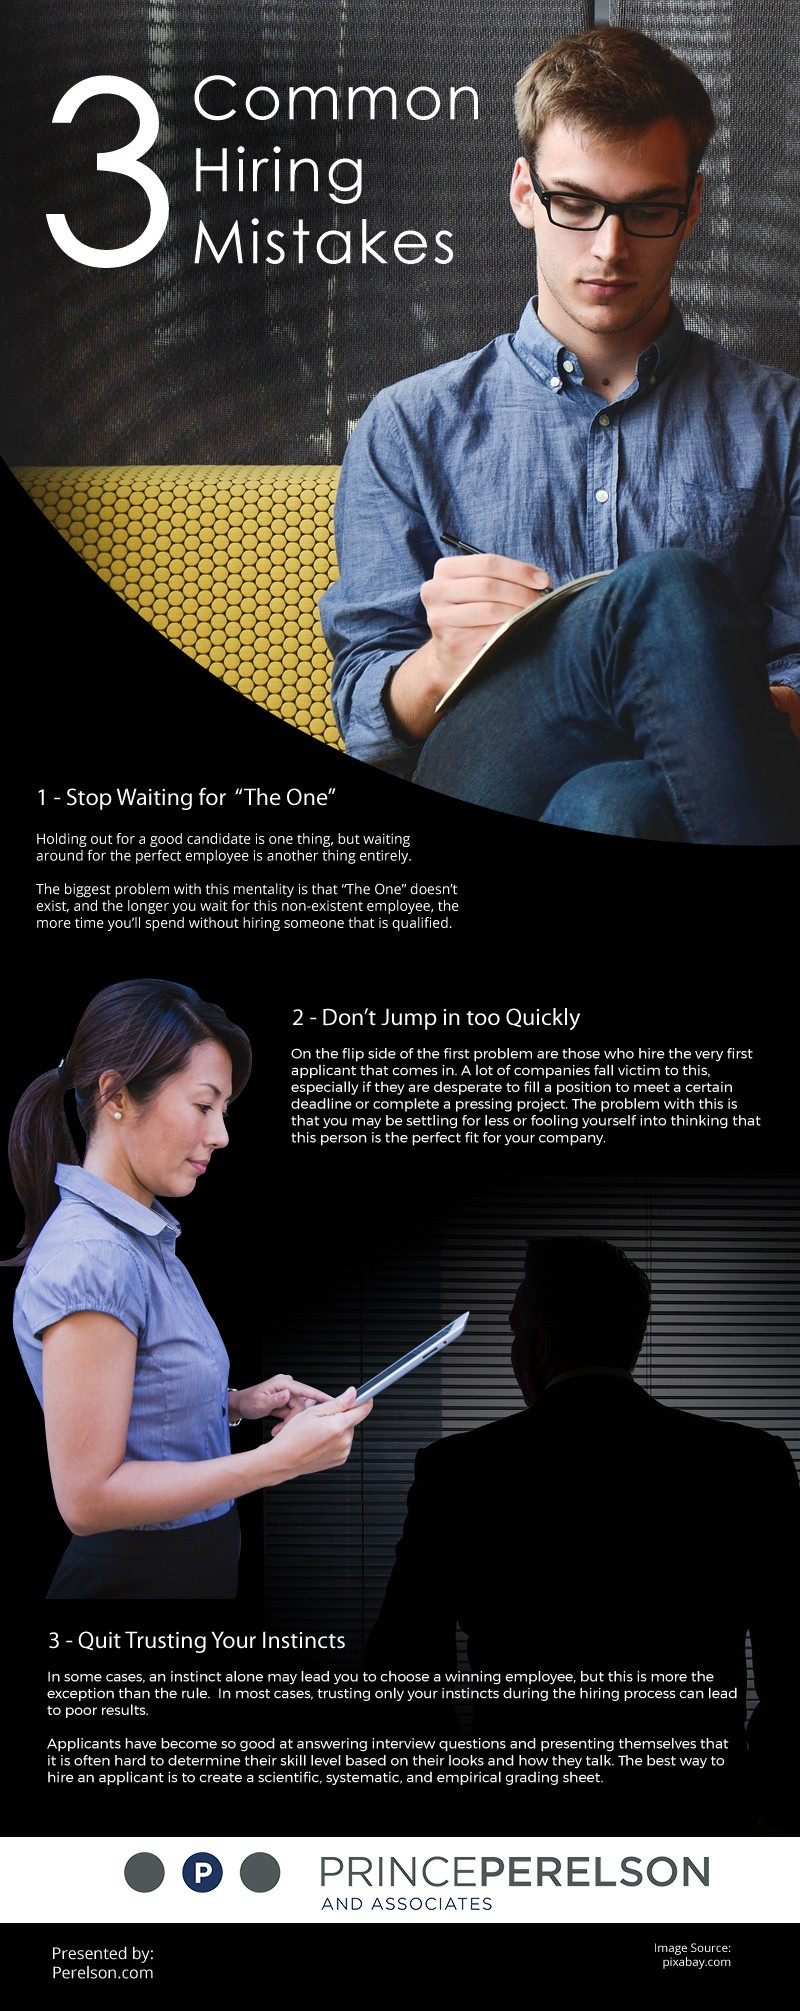 3 Common Hiring Mistakes [infographic]